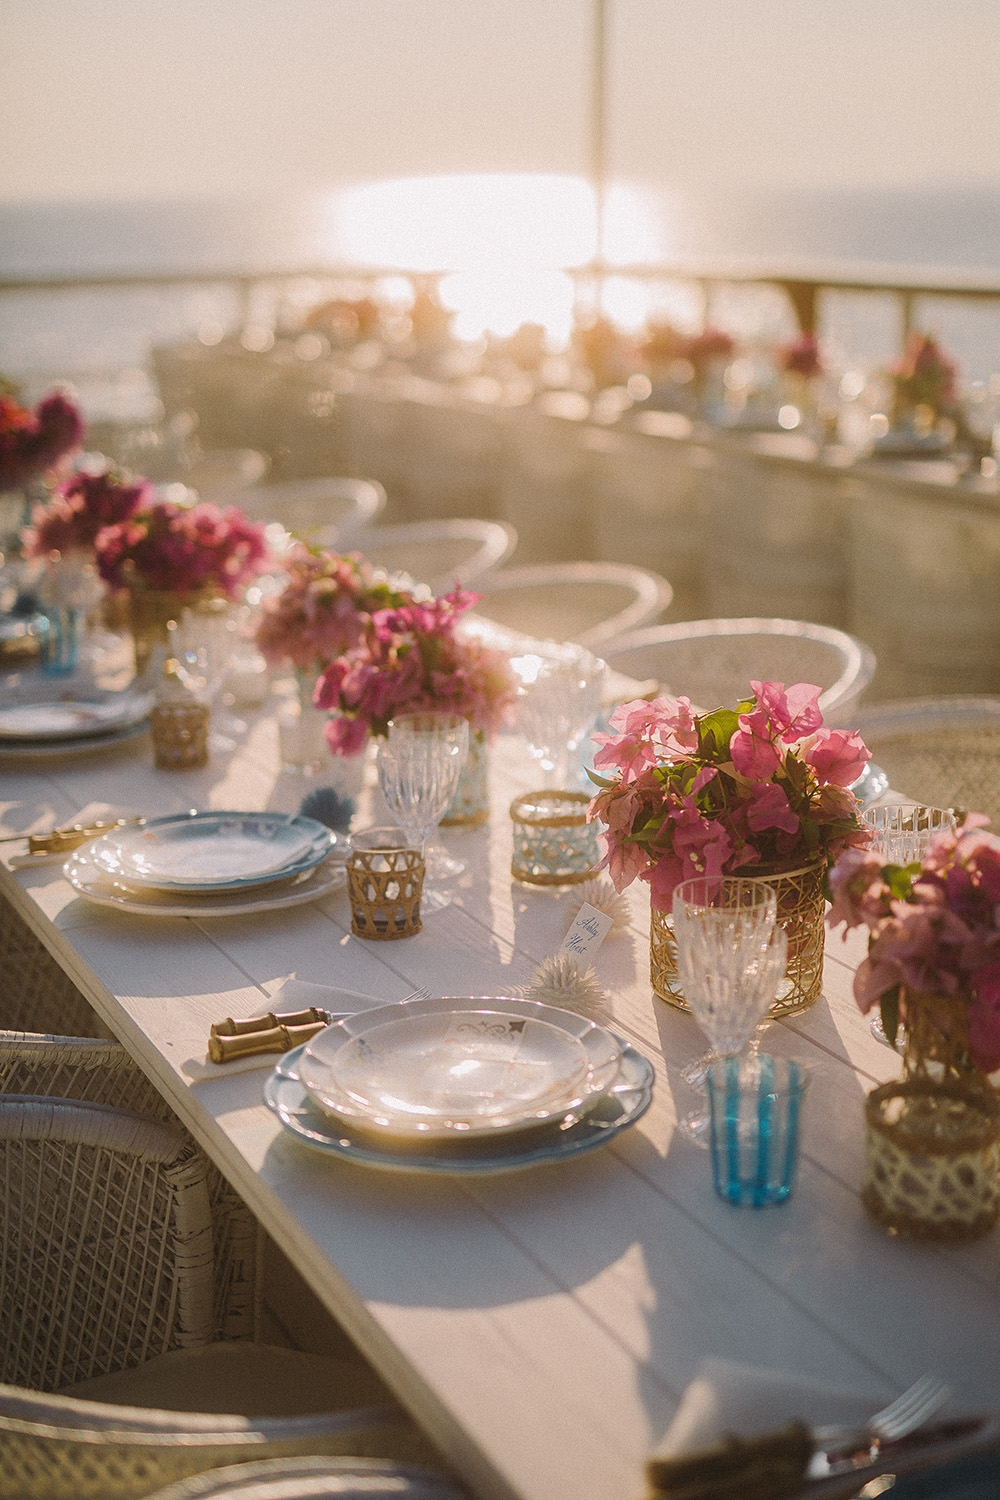 The table setting for a sunset dinner. Vases of flowers run down the centre and blue and white tableware has been set at each place setting.